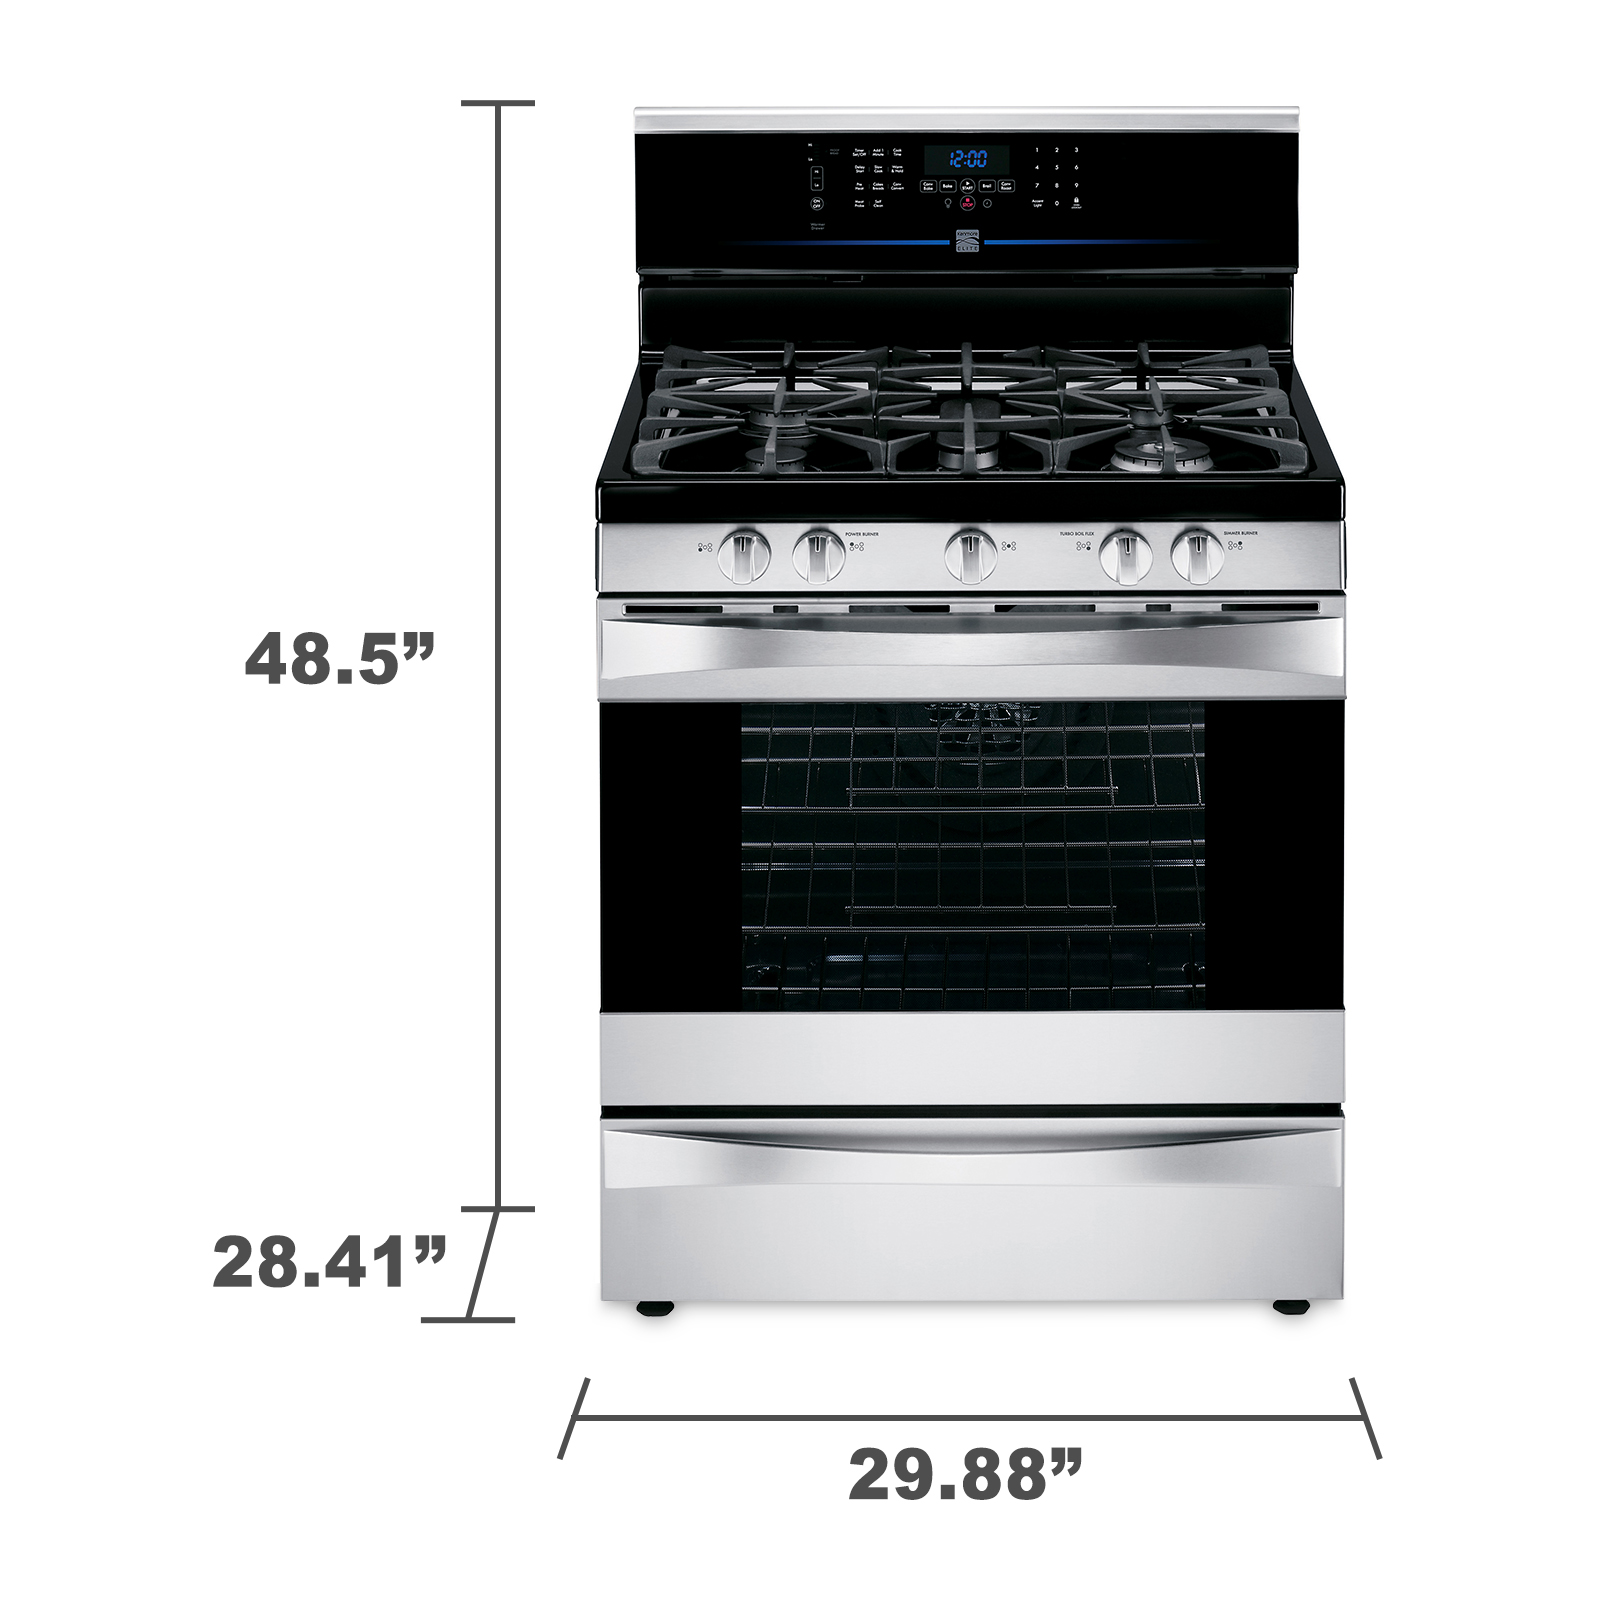 Kenmore Elite 5.5 cu. ft. Dual-Fuel Range w/ True Convection - Stainless Steel